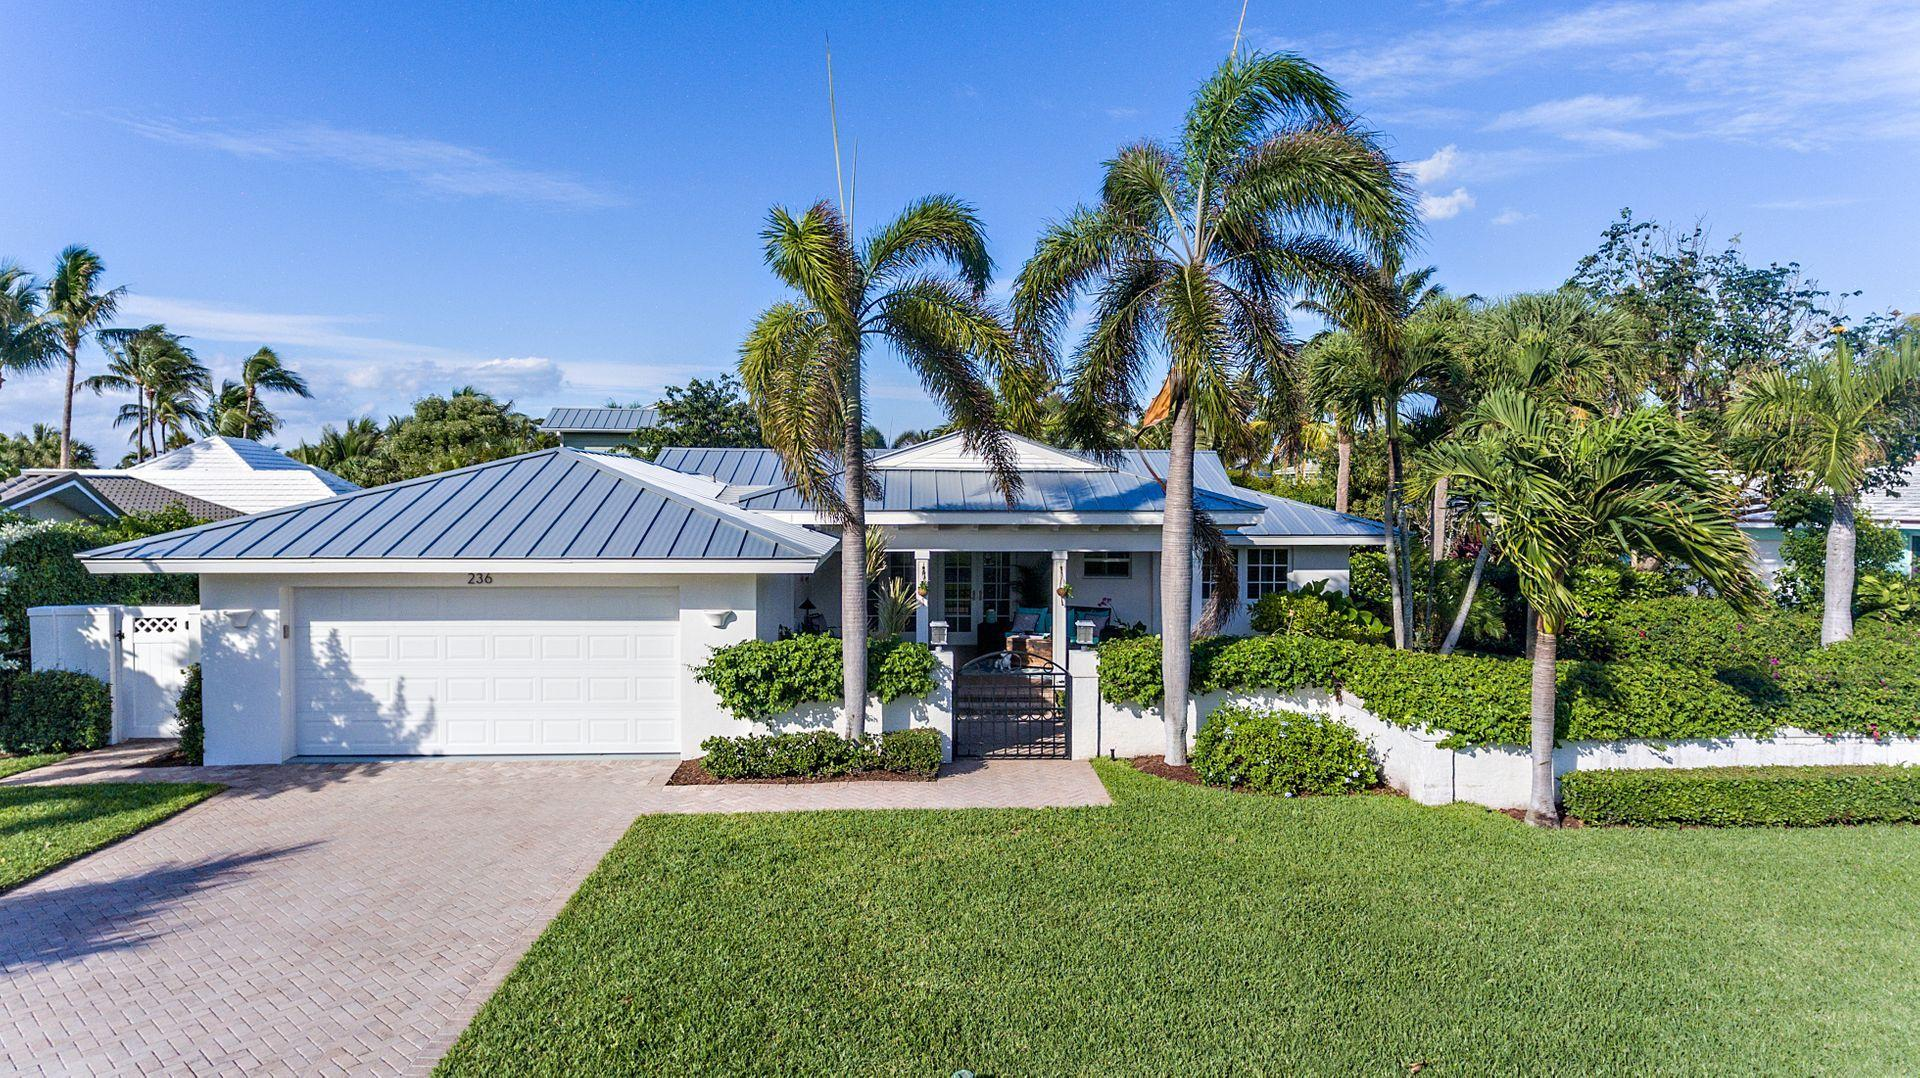 New Home for sale at 236 Beacon Lane in Jupiter Inlet Colony